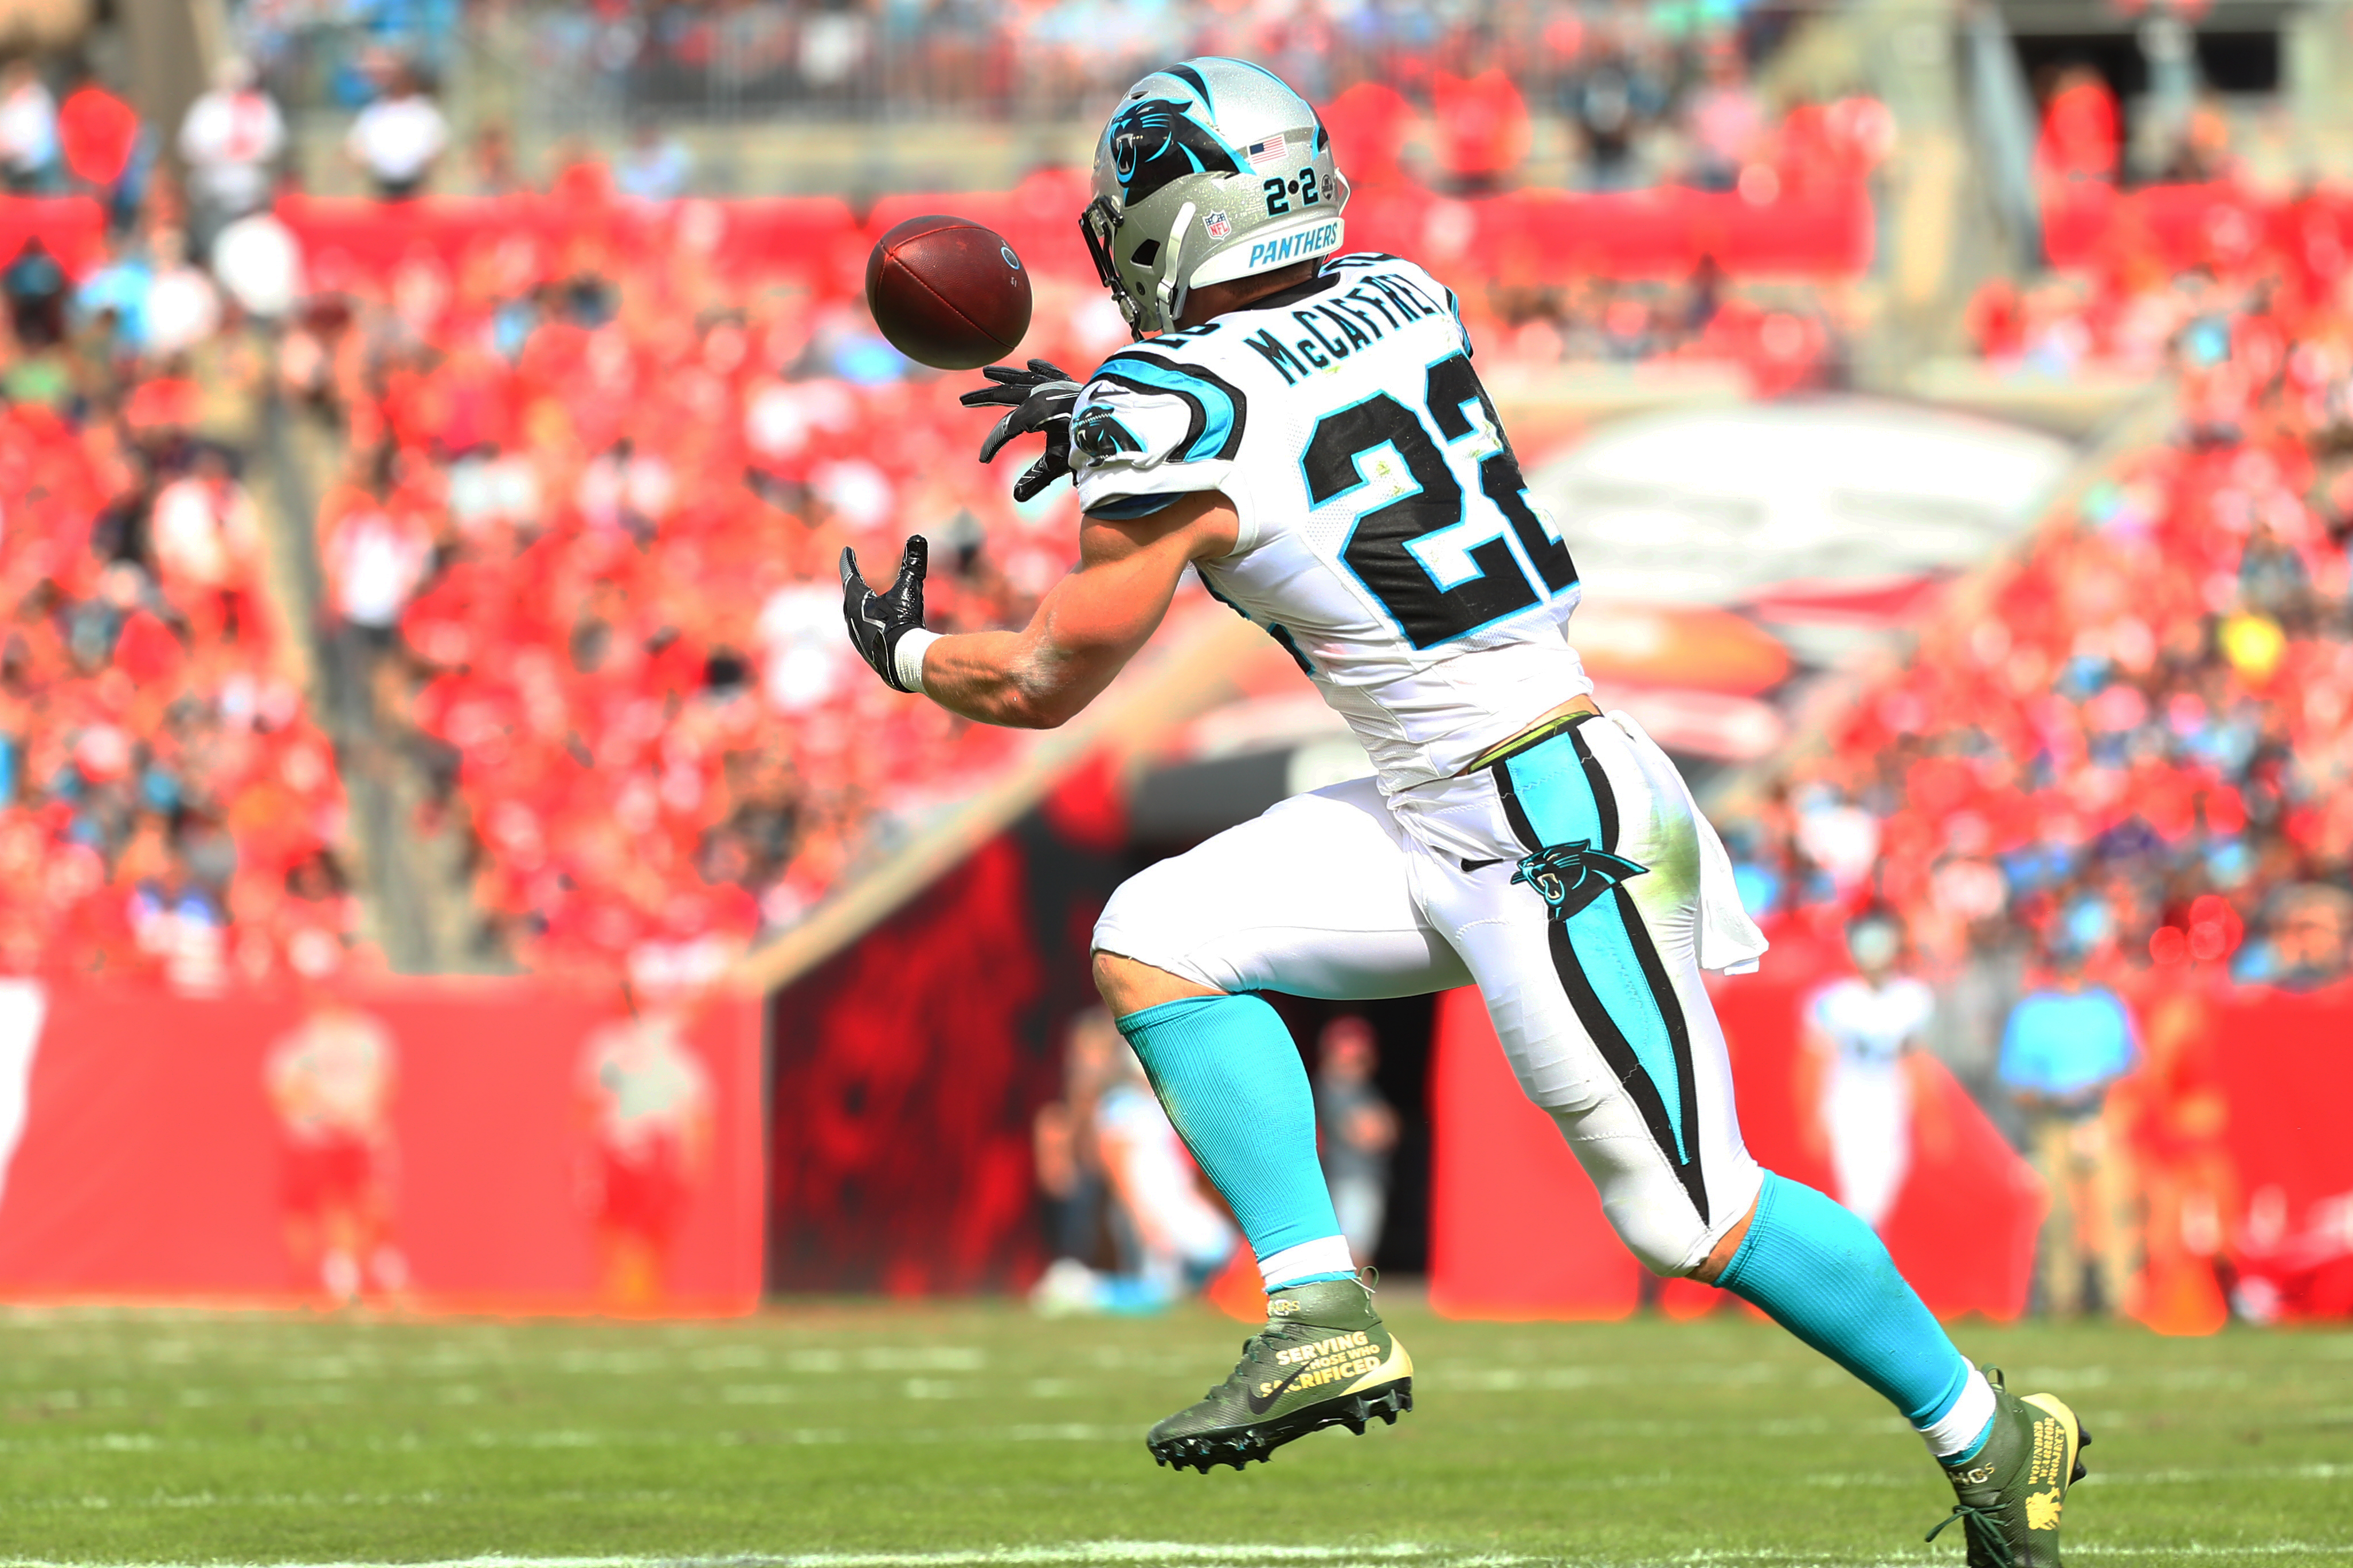 TAMPA, FLORIDA - DECEMBER 02: Christian McCaffrey #22 of the Carolina Panthers catches an eight-yard touchdown pass and run from Cam Newton (not pictured) during the first quarter against the Tampa Bay Buccaneers at Raymond James Stadium on December 02, 2